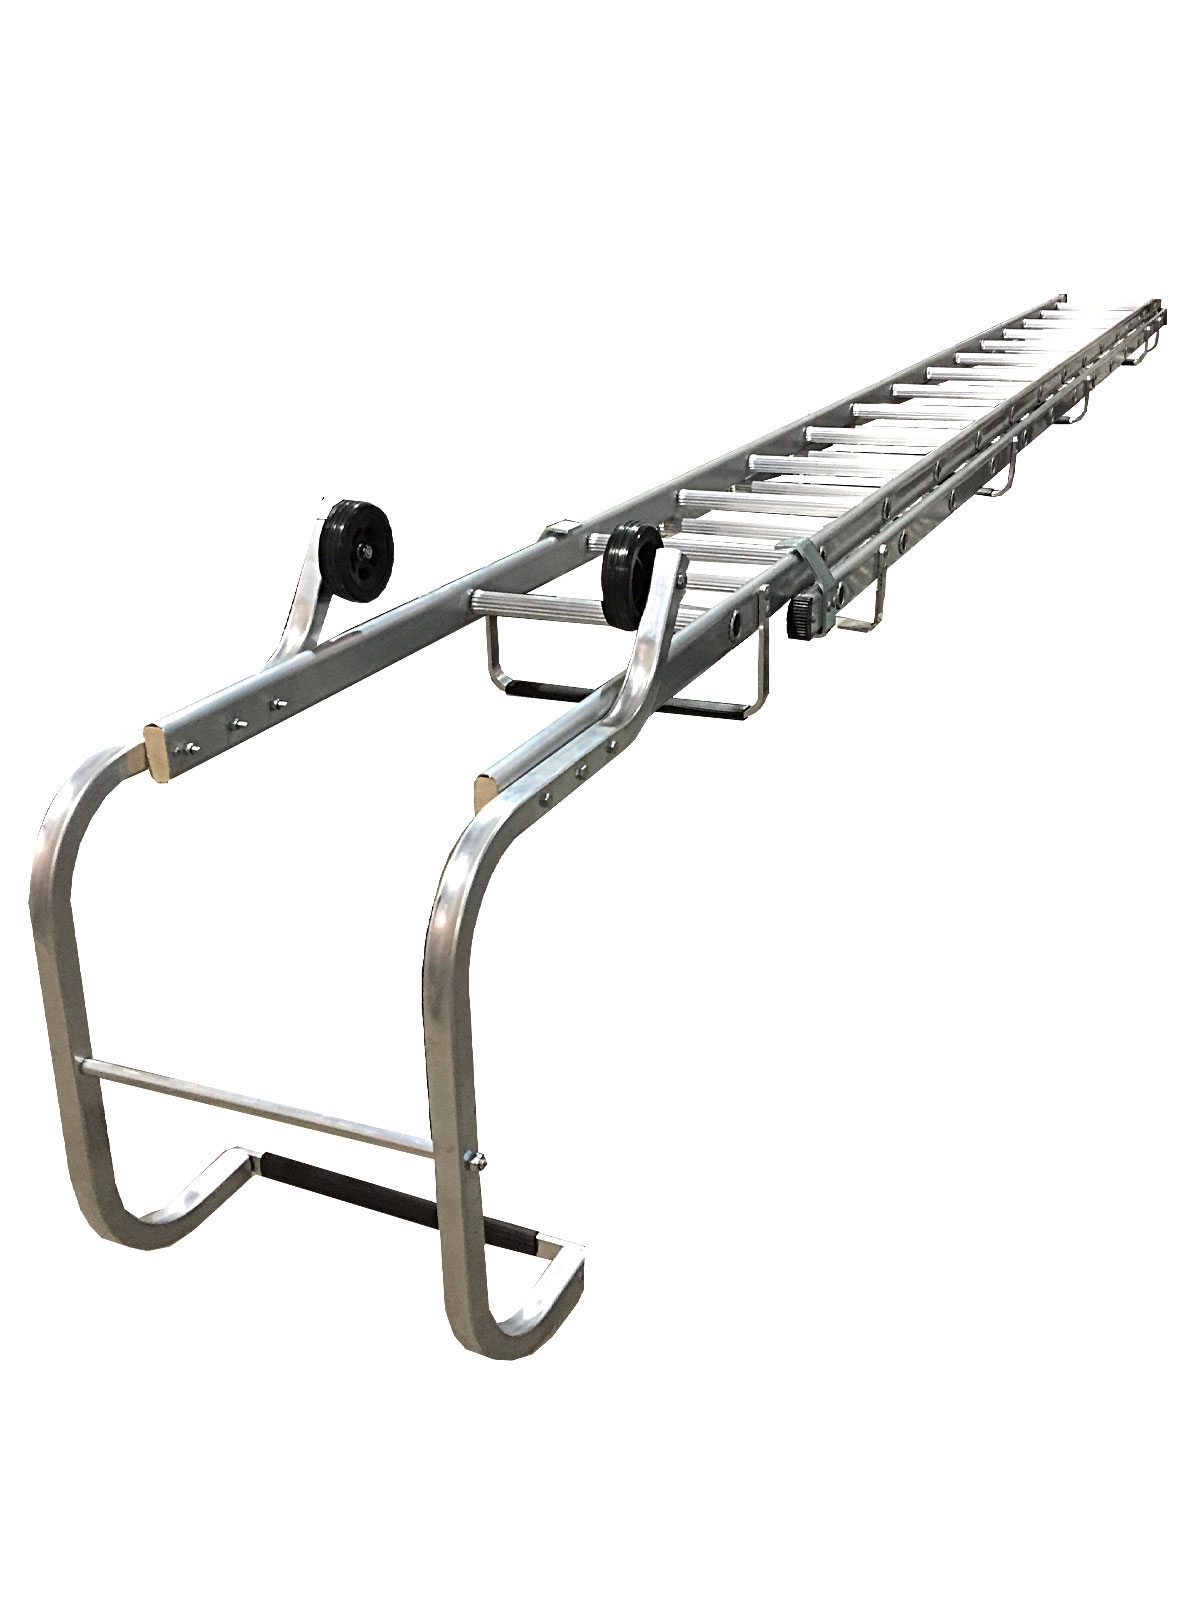 Ladder Roof Rack >> Extending Roof Ladders - Chase Manufacturing Ltd